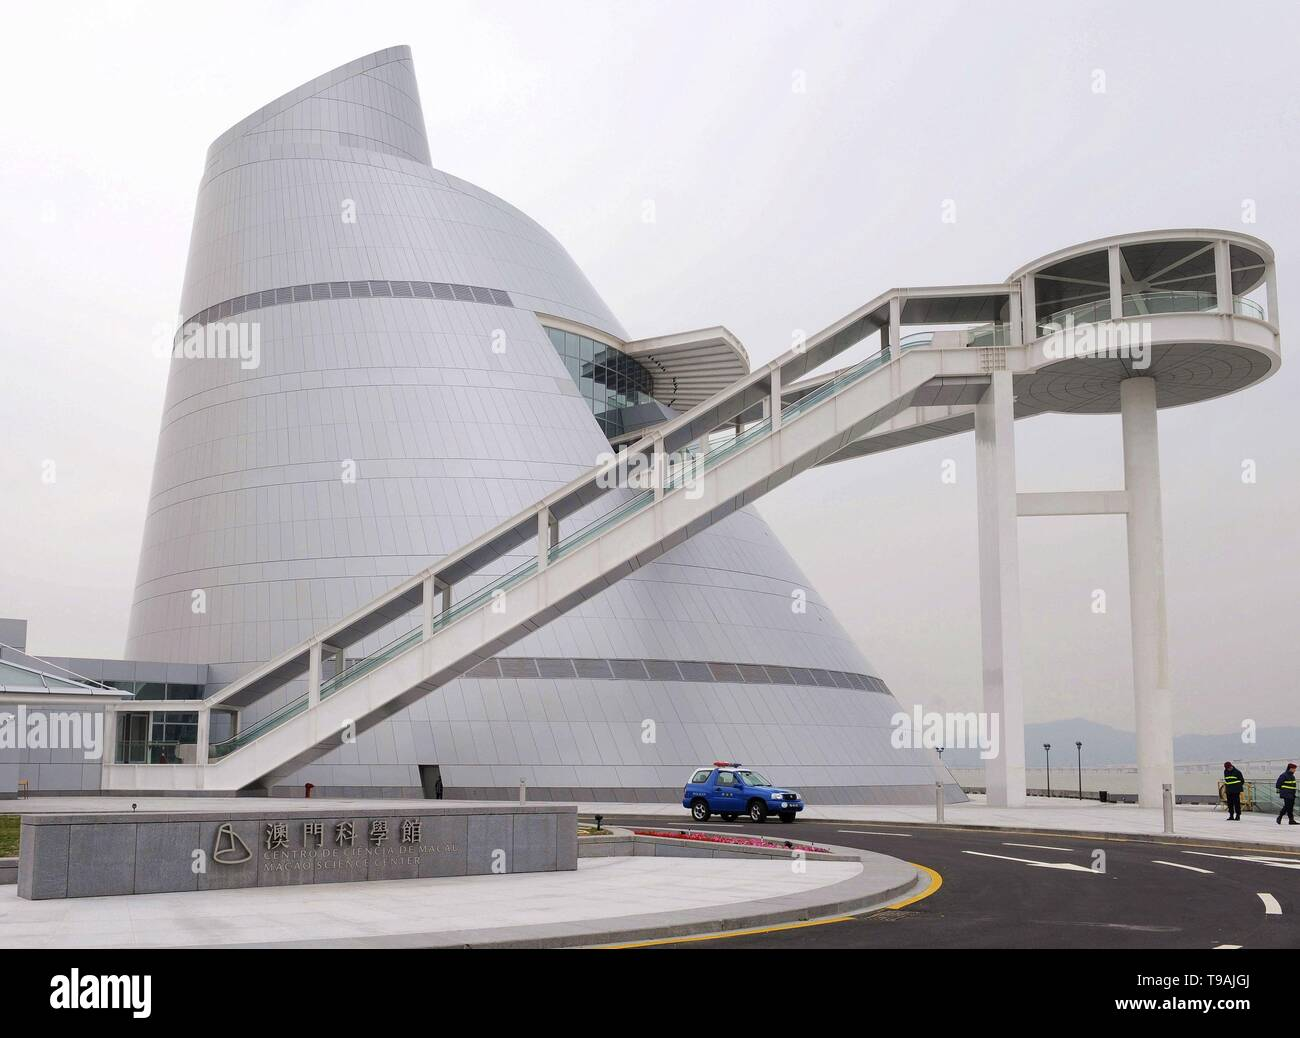 Beijing, China. 16th Dec, 2009. File photo taken on Dec. 16, 2009 shows the view of the Macao Science Center designed by world-renowned architect Ieoh Ming Pei in south China's Macao. Ieoh Ming Pei, commonly known as I.M. Pei, died Thursday at age 102. Pei was born in Guangzhou of China and moved to the United States in 1935. He won a wide variety of prizes and awards in the field of architecture. Credit: Chen Duo/Xinhua/Alamy Live News - Stock Image